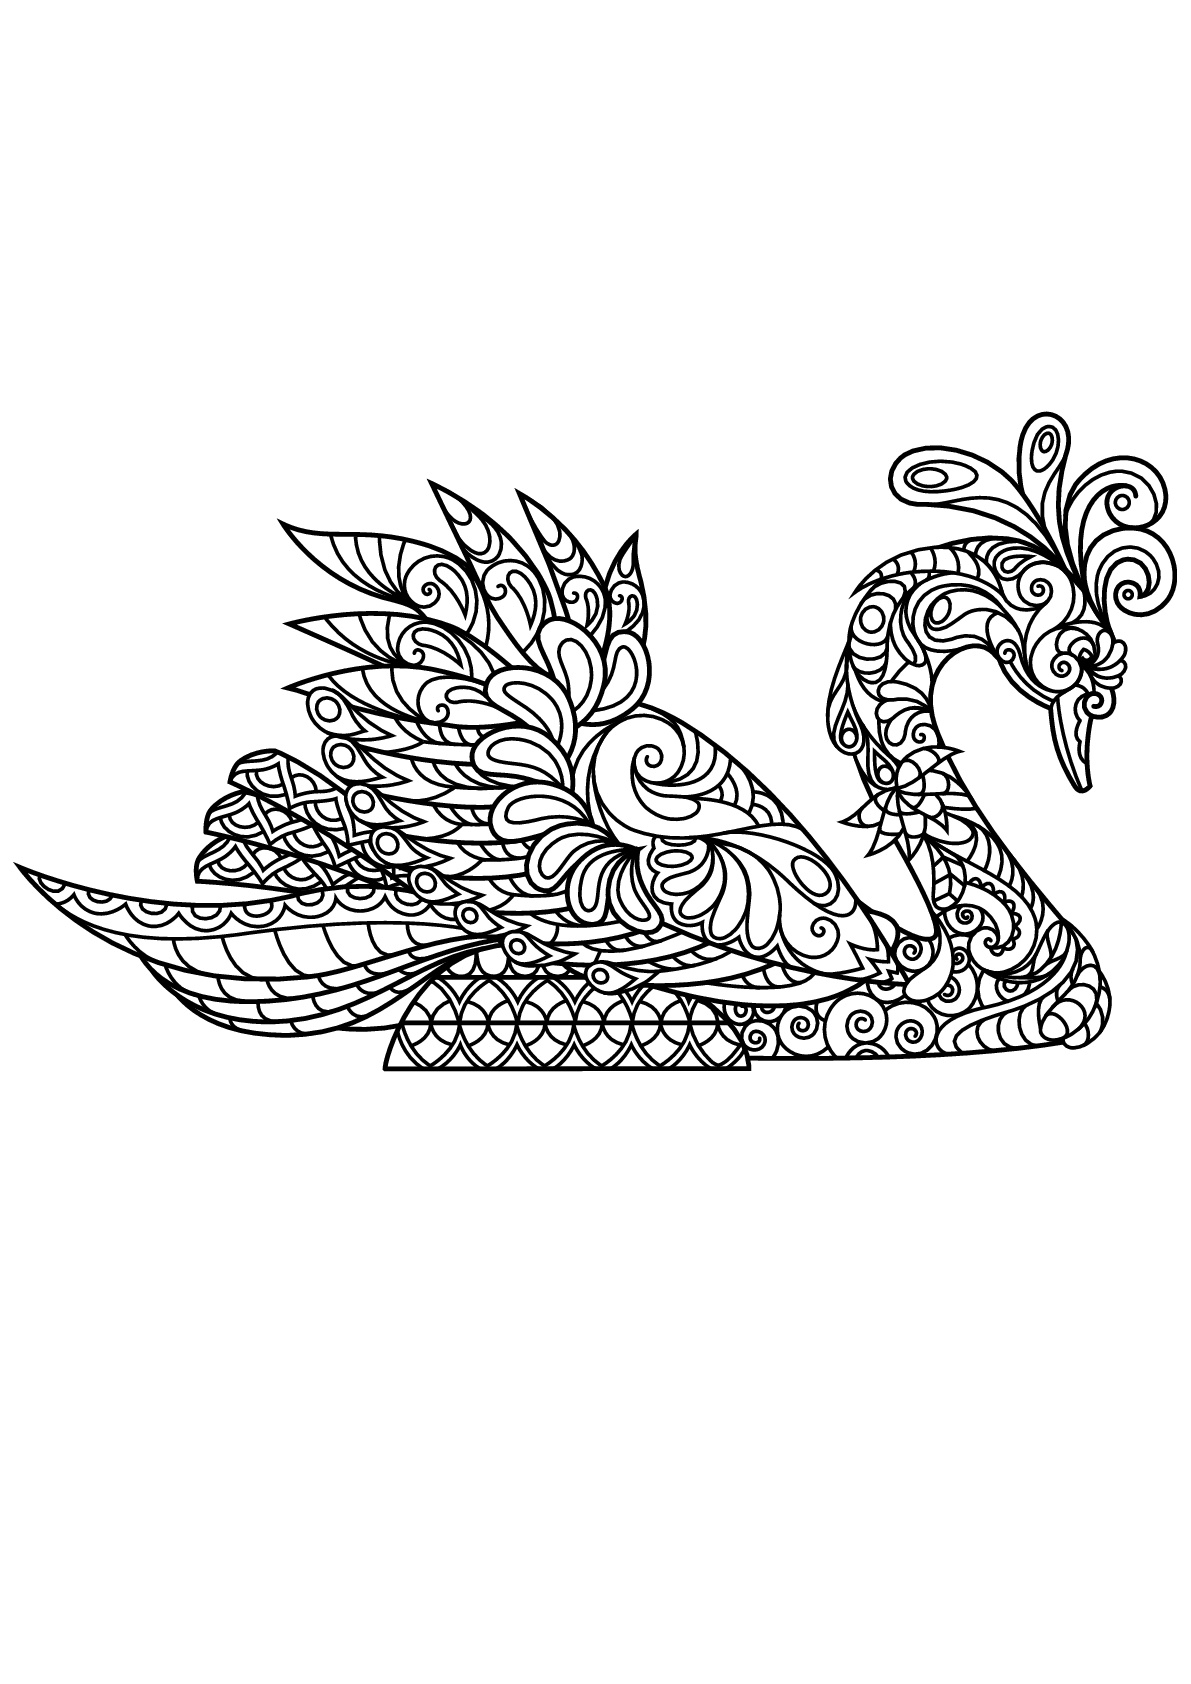 birds to color for children birds coloring pages for kids